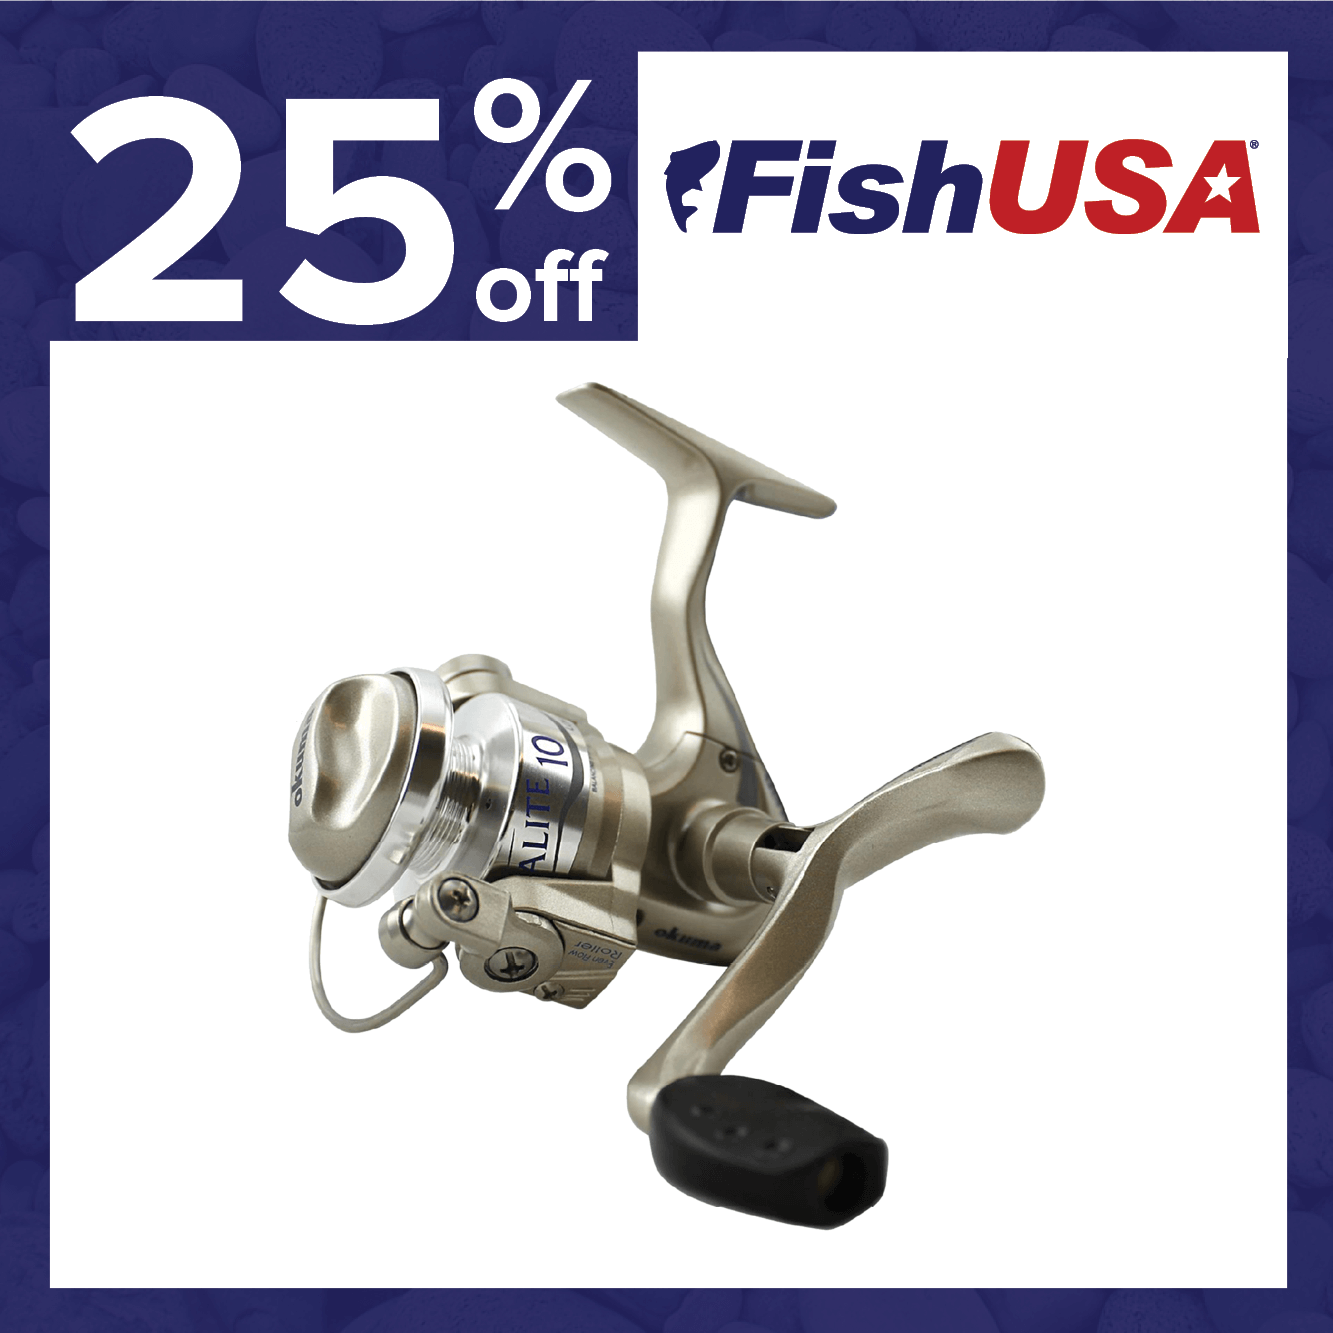 25% off the Okuma Ultralight 10 Spinning Reel